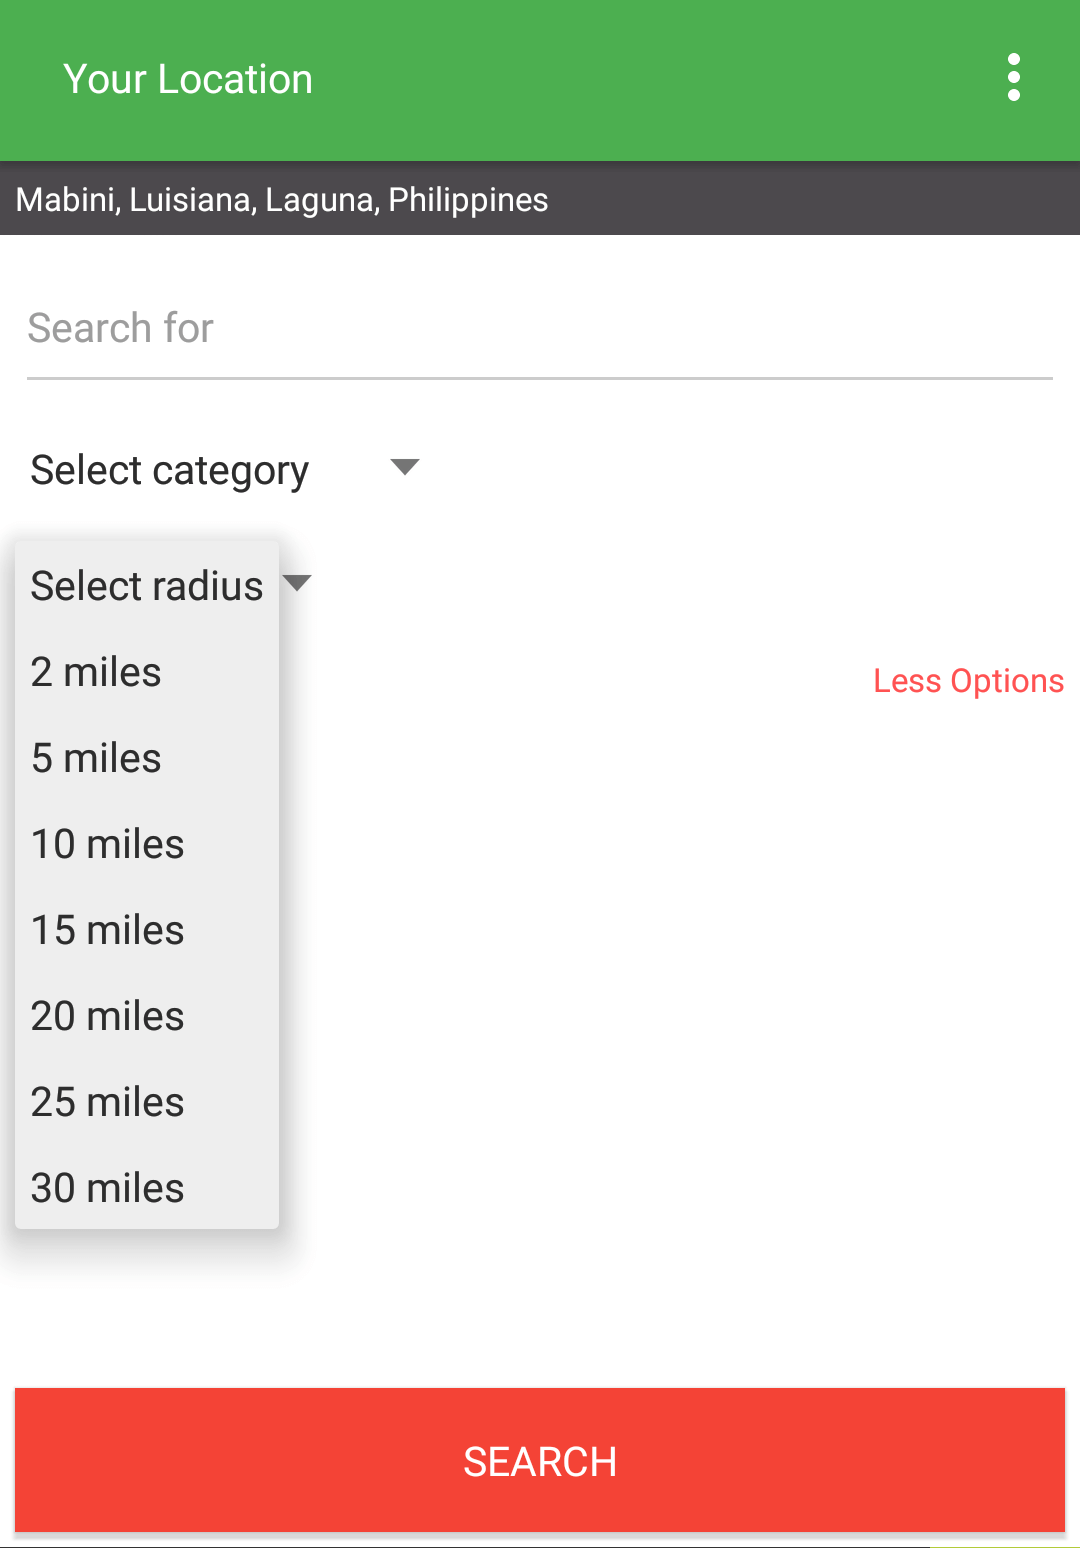 Select radius of search - Places